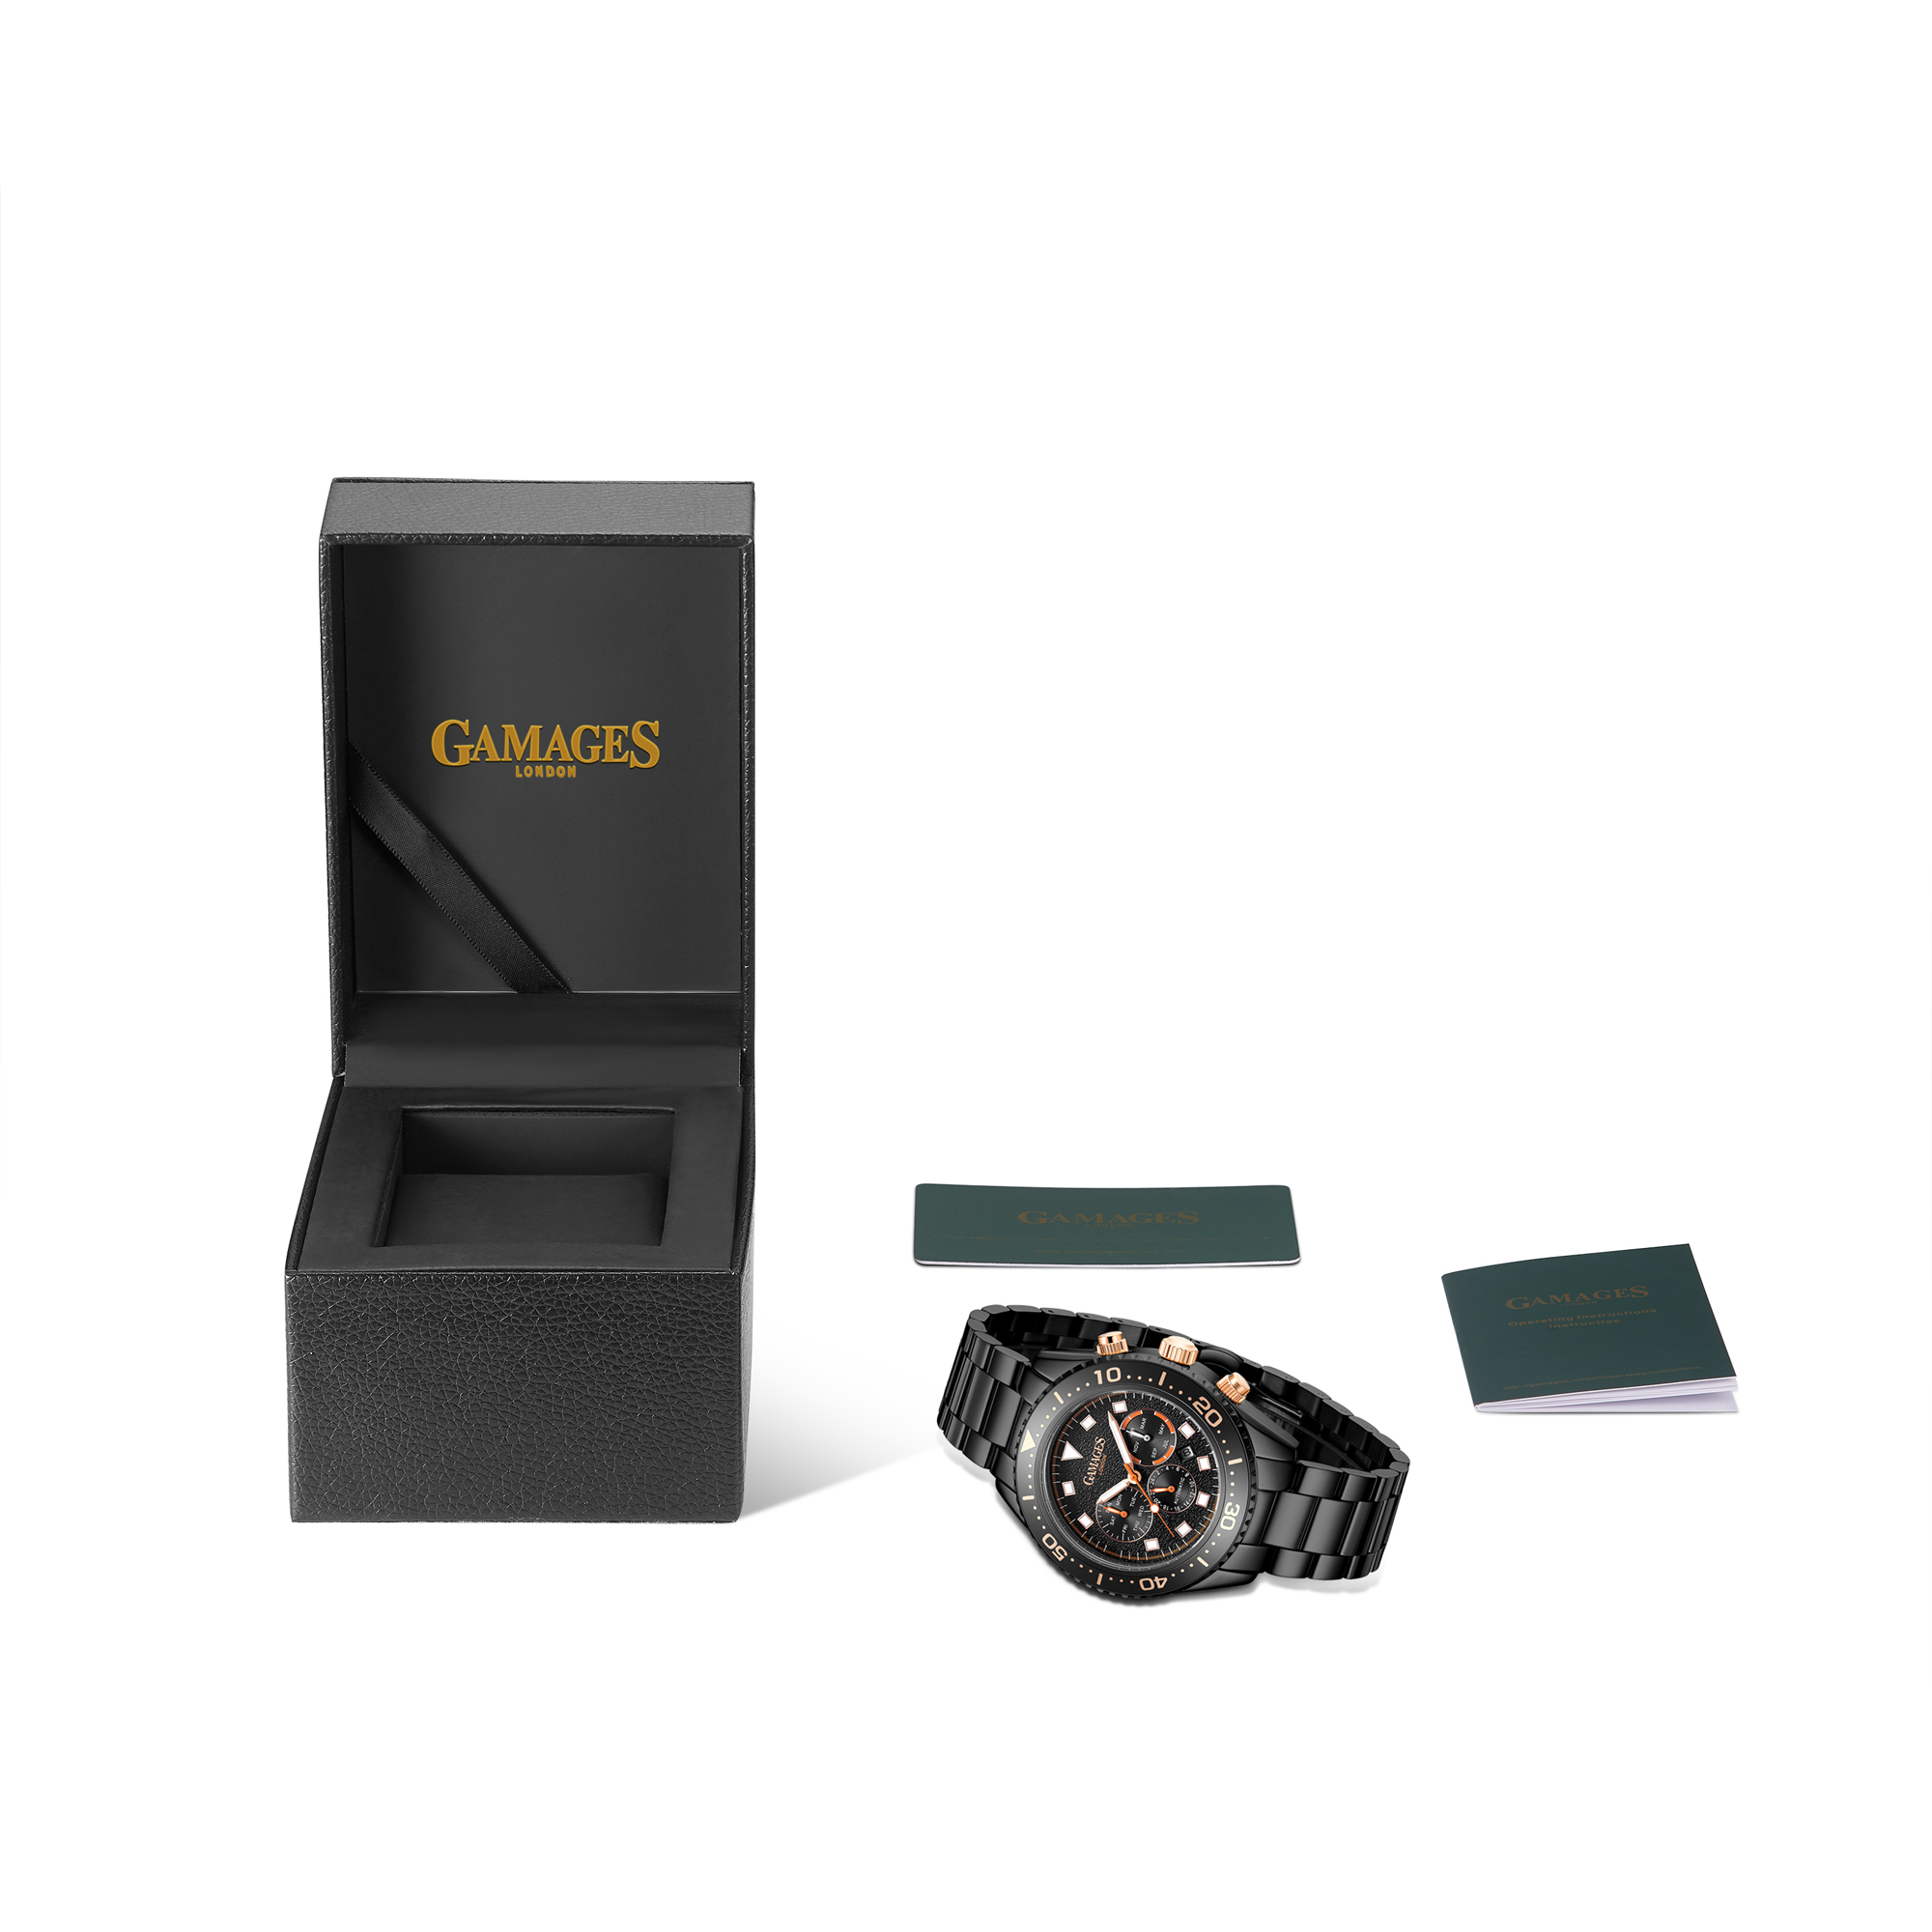 Limited Edition Hand Assembled GAMAGES Allure Automatic Black – 5 Year Warranty & Free Delivery - Image 2 of 4